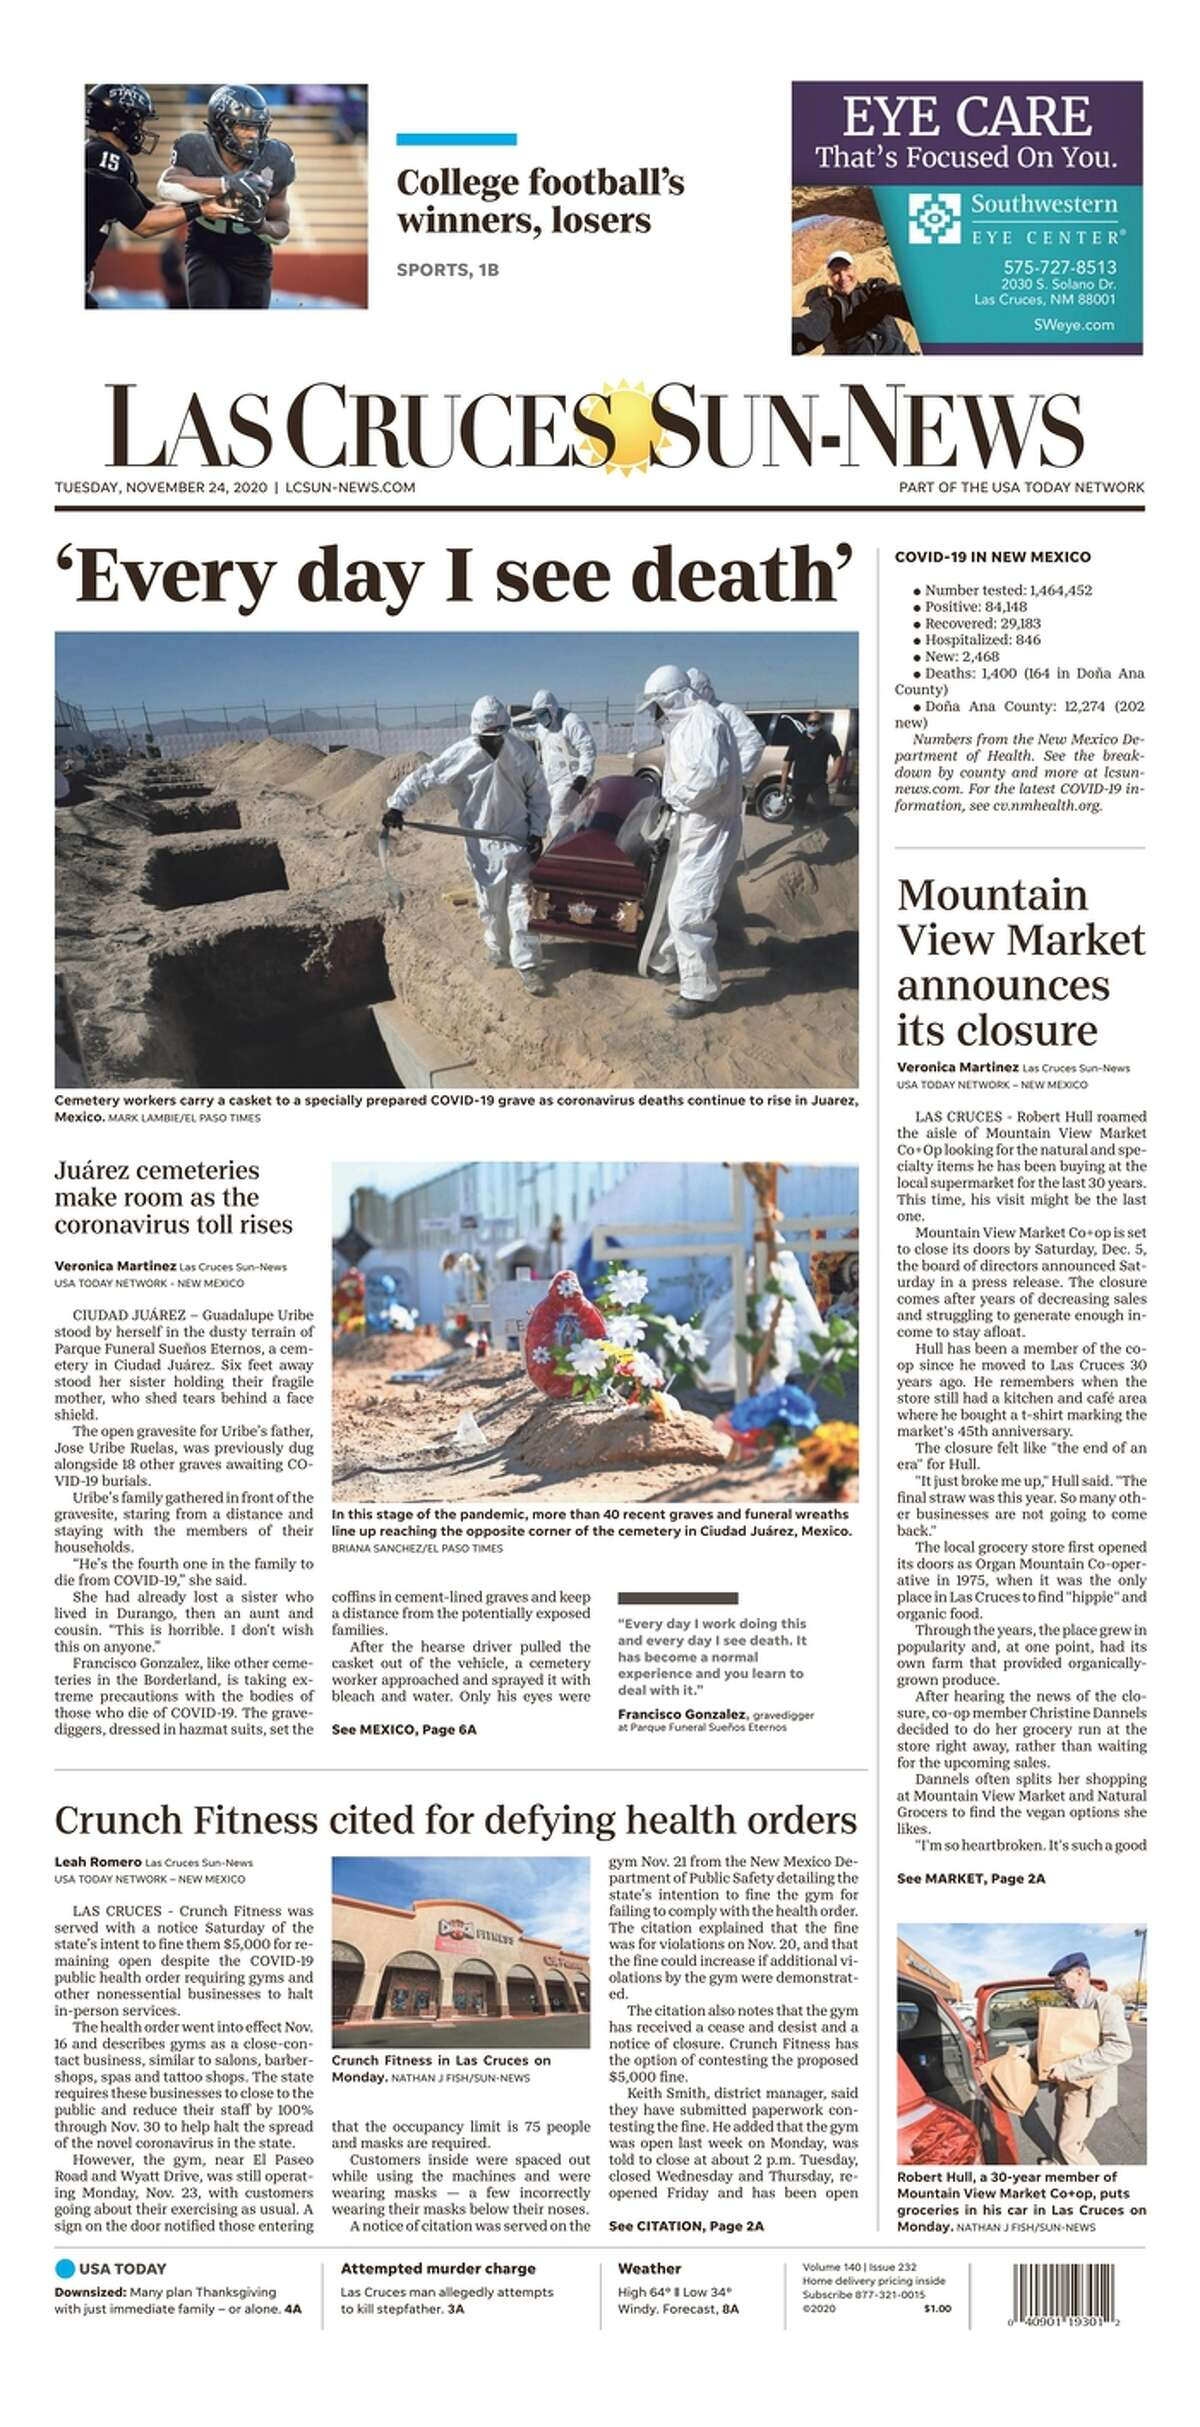 The front page of the Las Cruces Sun-News, a daily newspaper published in New Mexico, on Nov. 24, 2020.